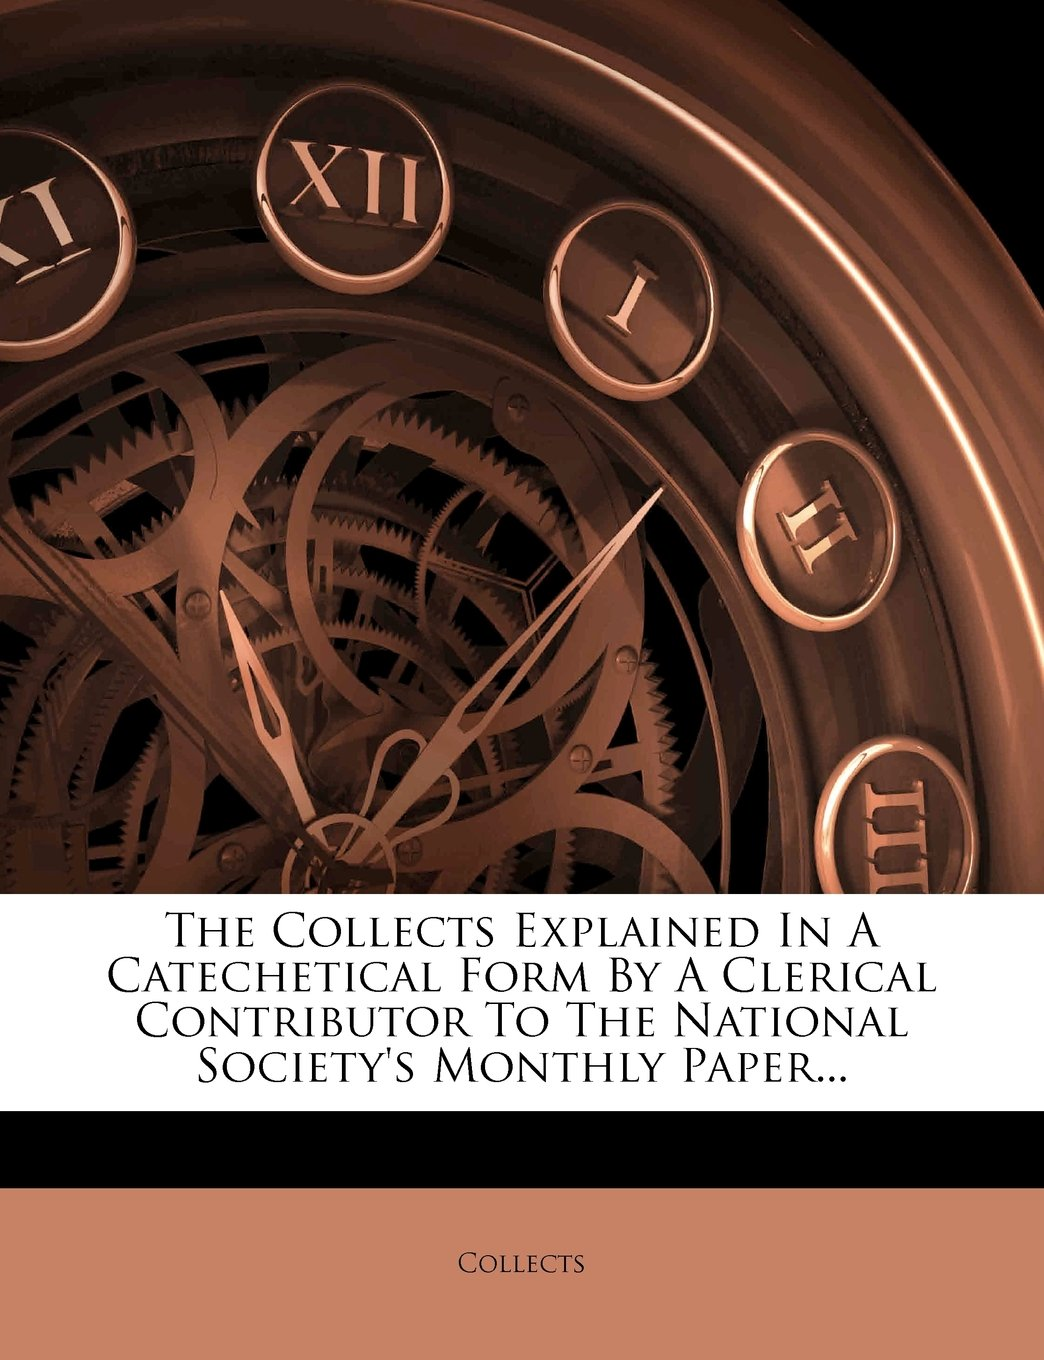 The Collects Explained In A Catechetical Form By A Clerical Contributor To The National Society's Monthly Paper... pdf